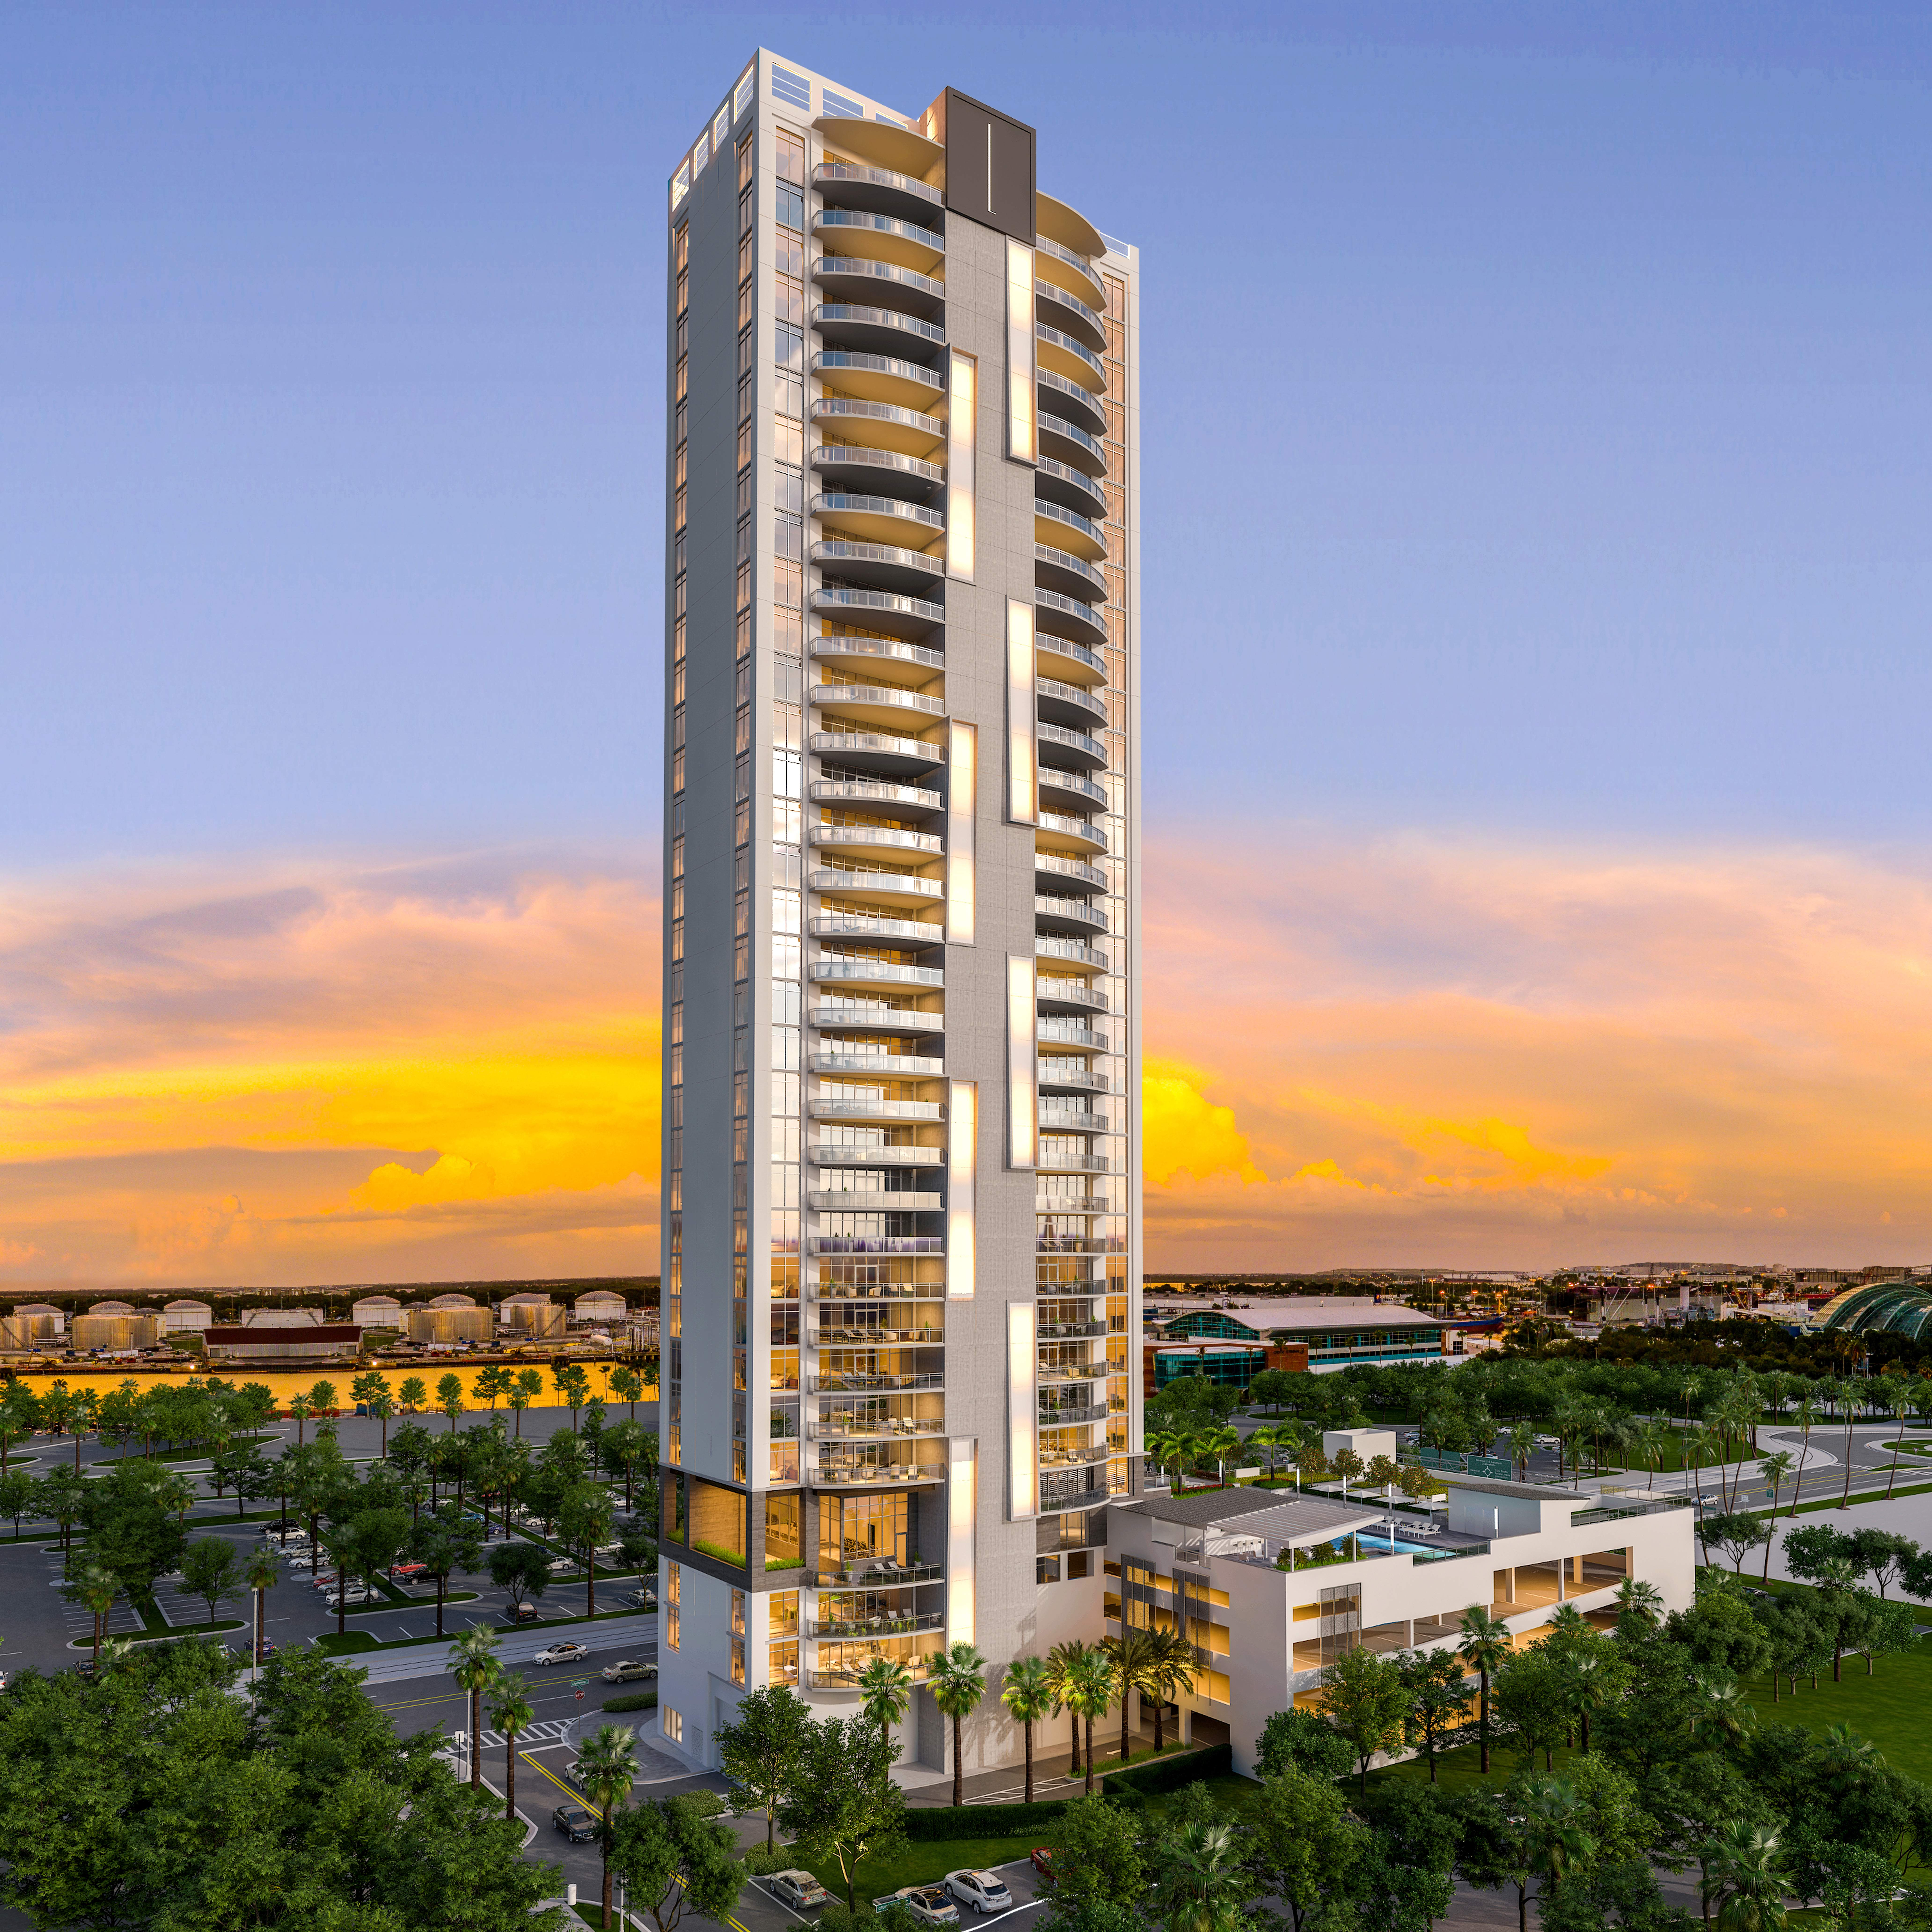 New 35 Story Condo Tower To Rise In Tampa S Channelside Area